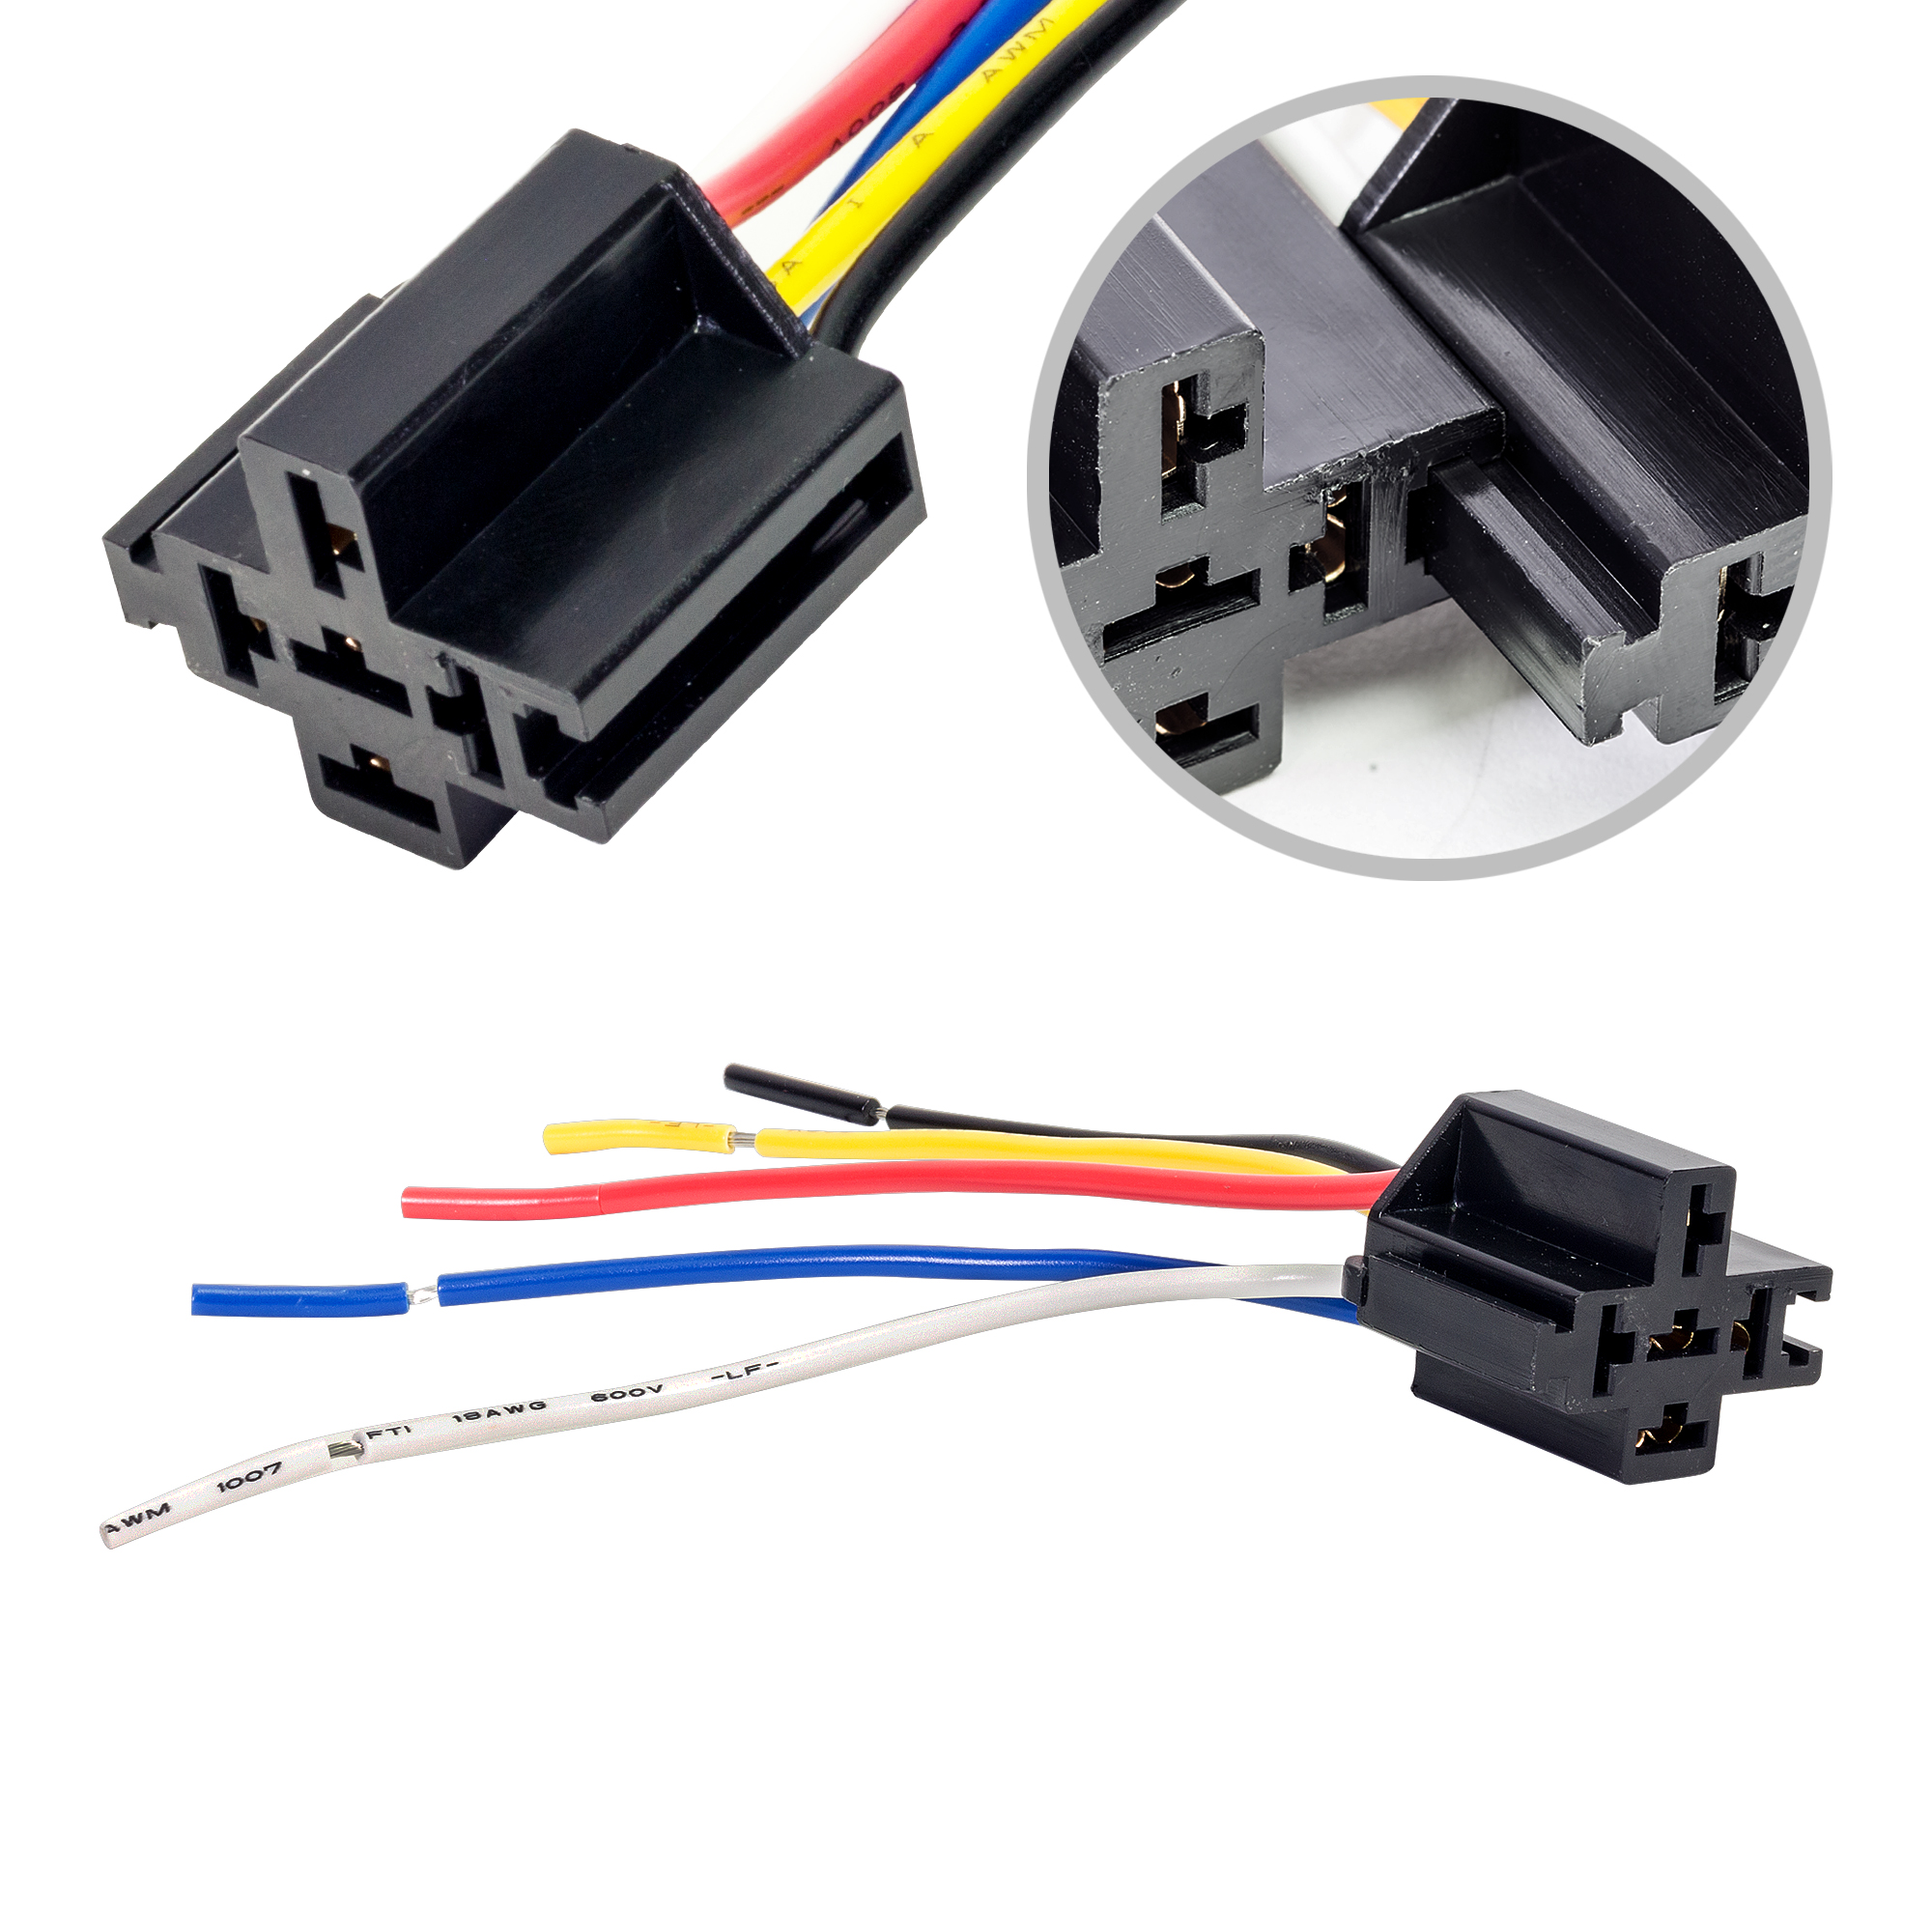 Ols Bosch Style 5 Pin Spdt Interlocking Relay Socket Harness Base With Wires